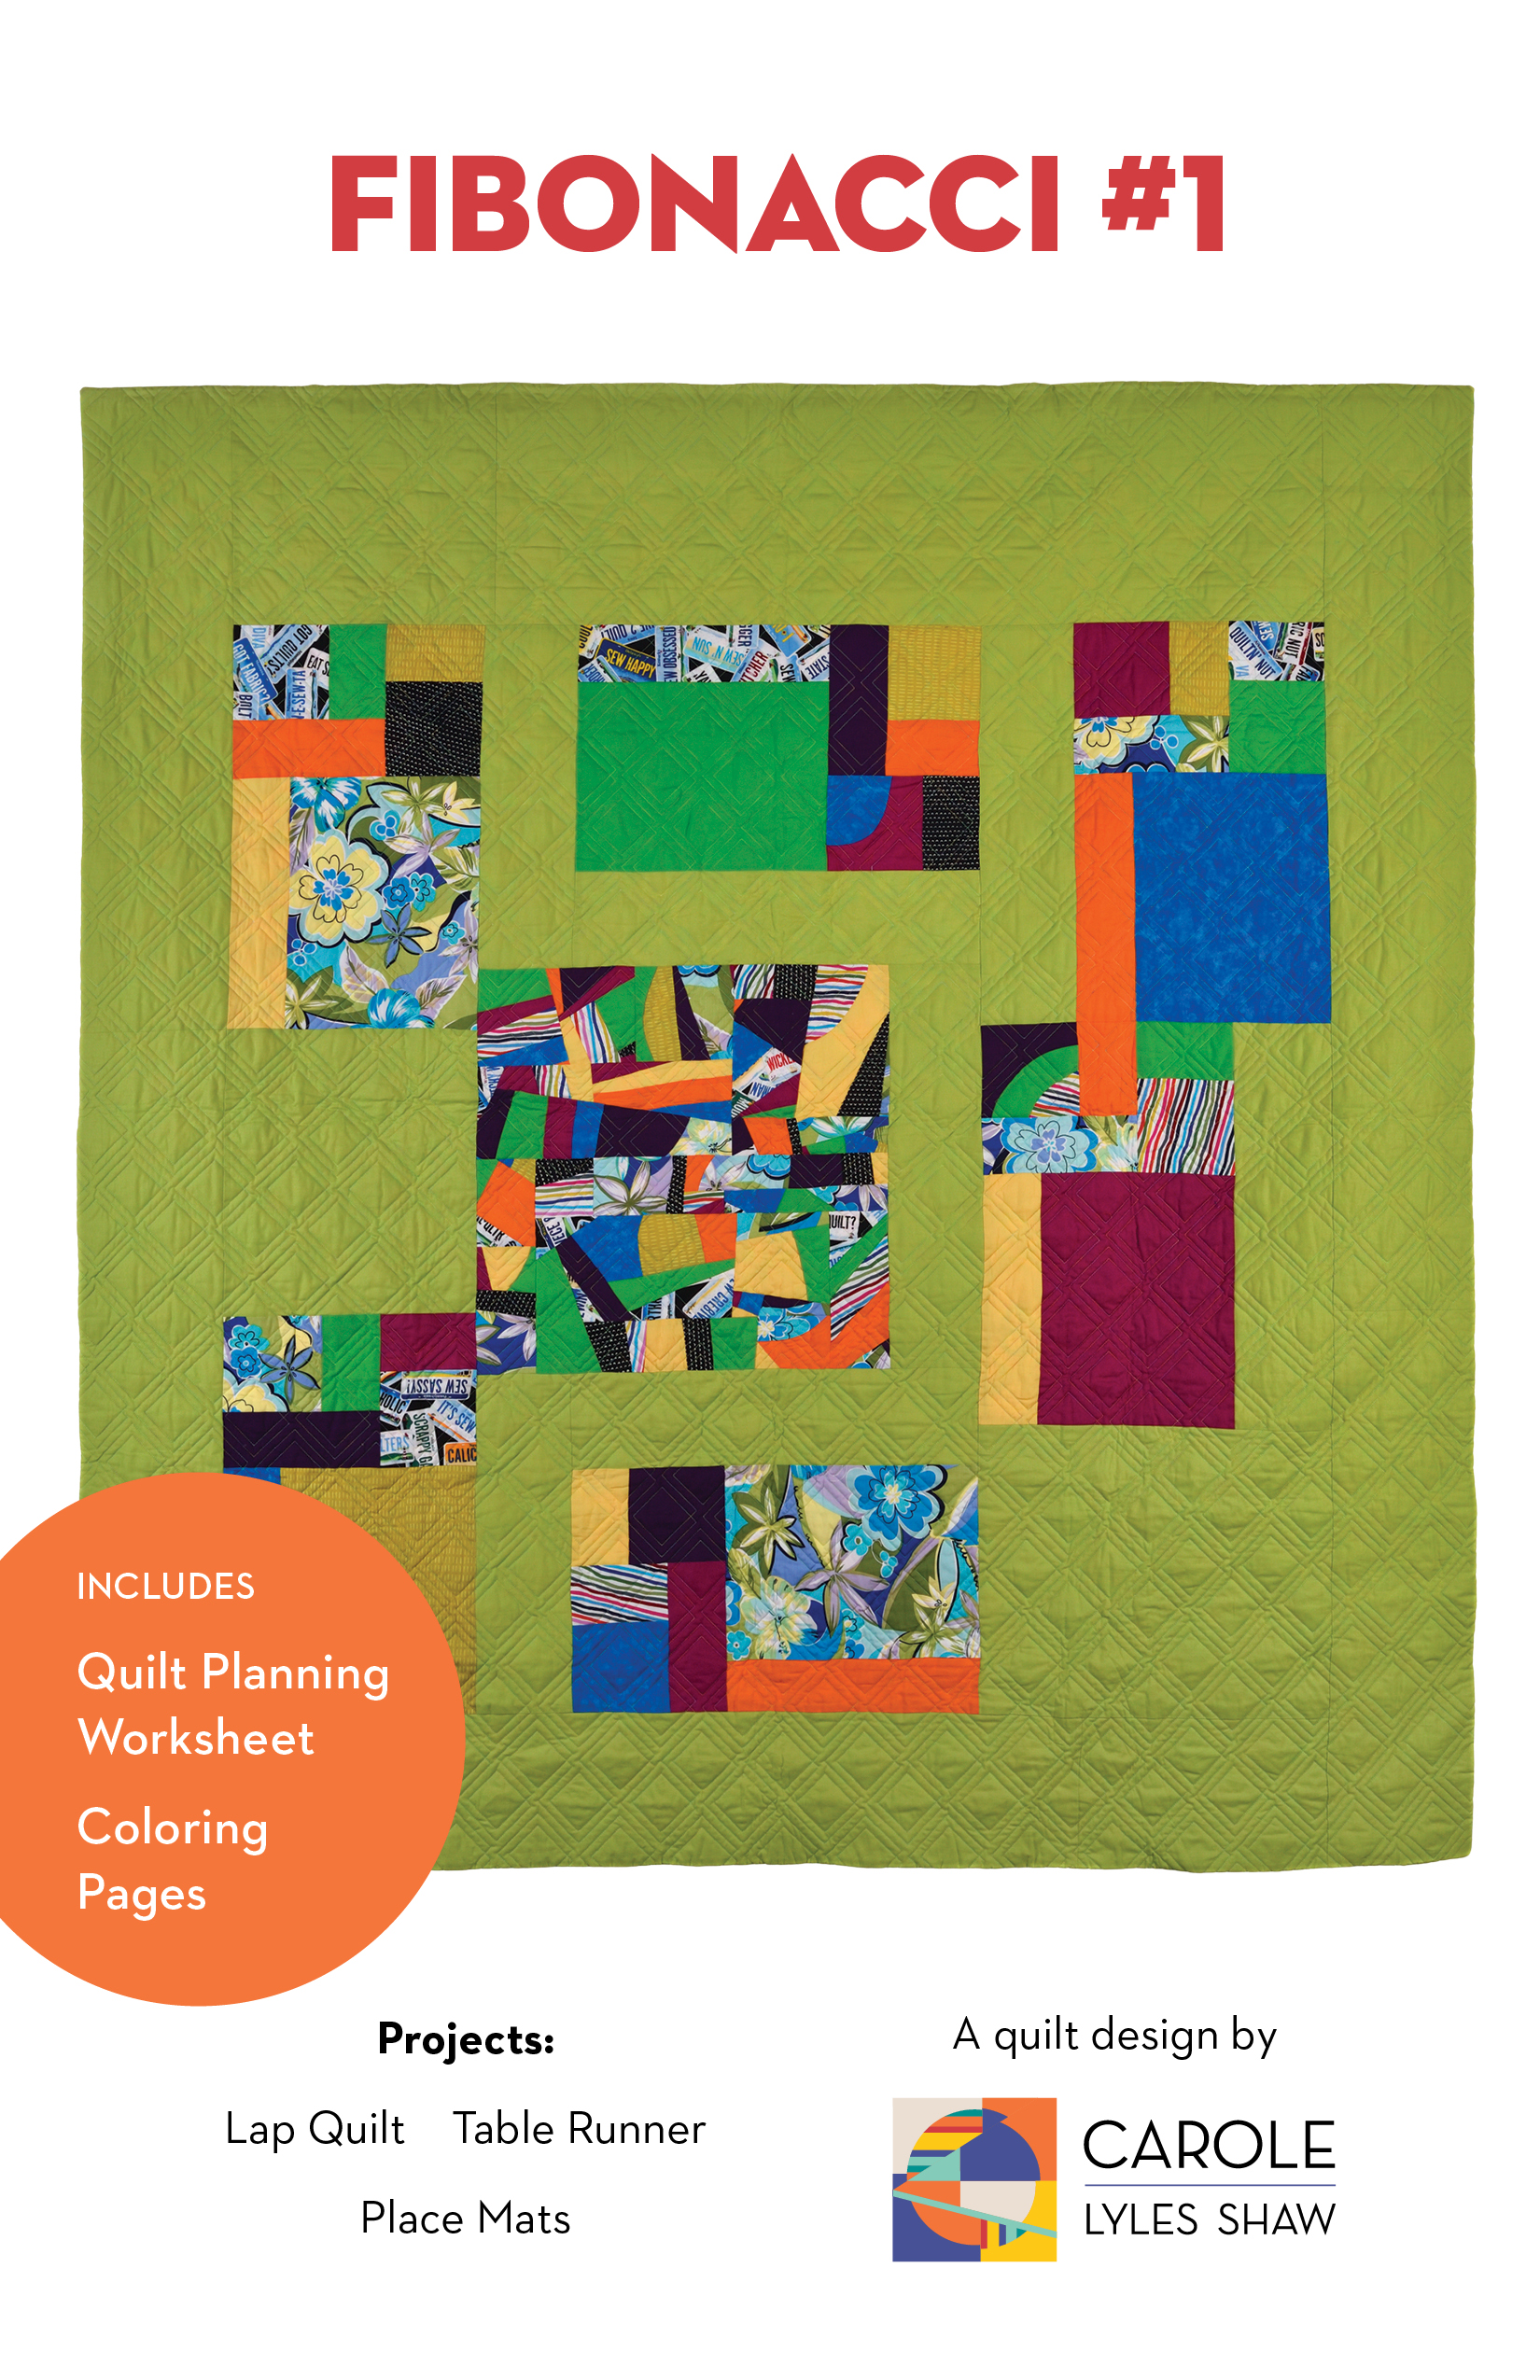 Using Fibonacci Numbers in Quilt Patterns - Carole Lyles Shaw